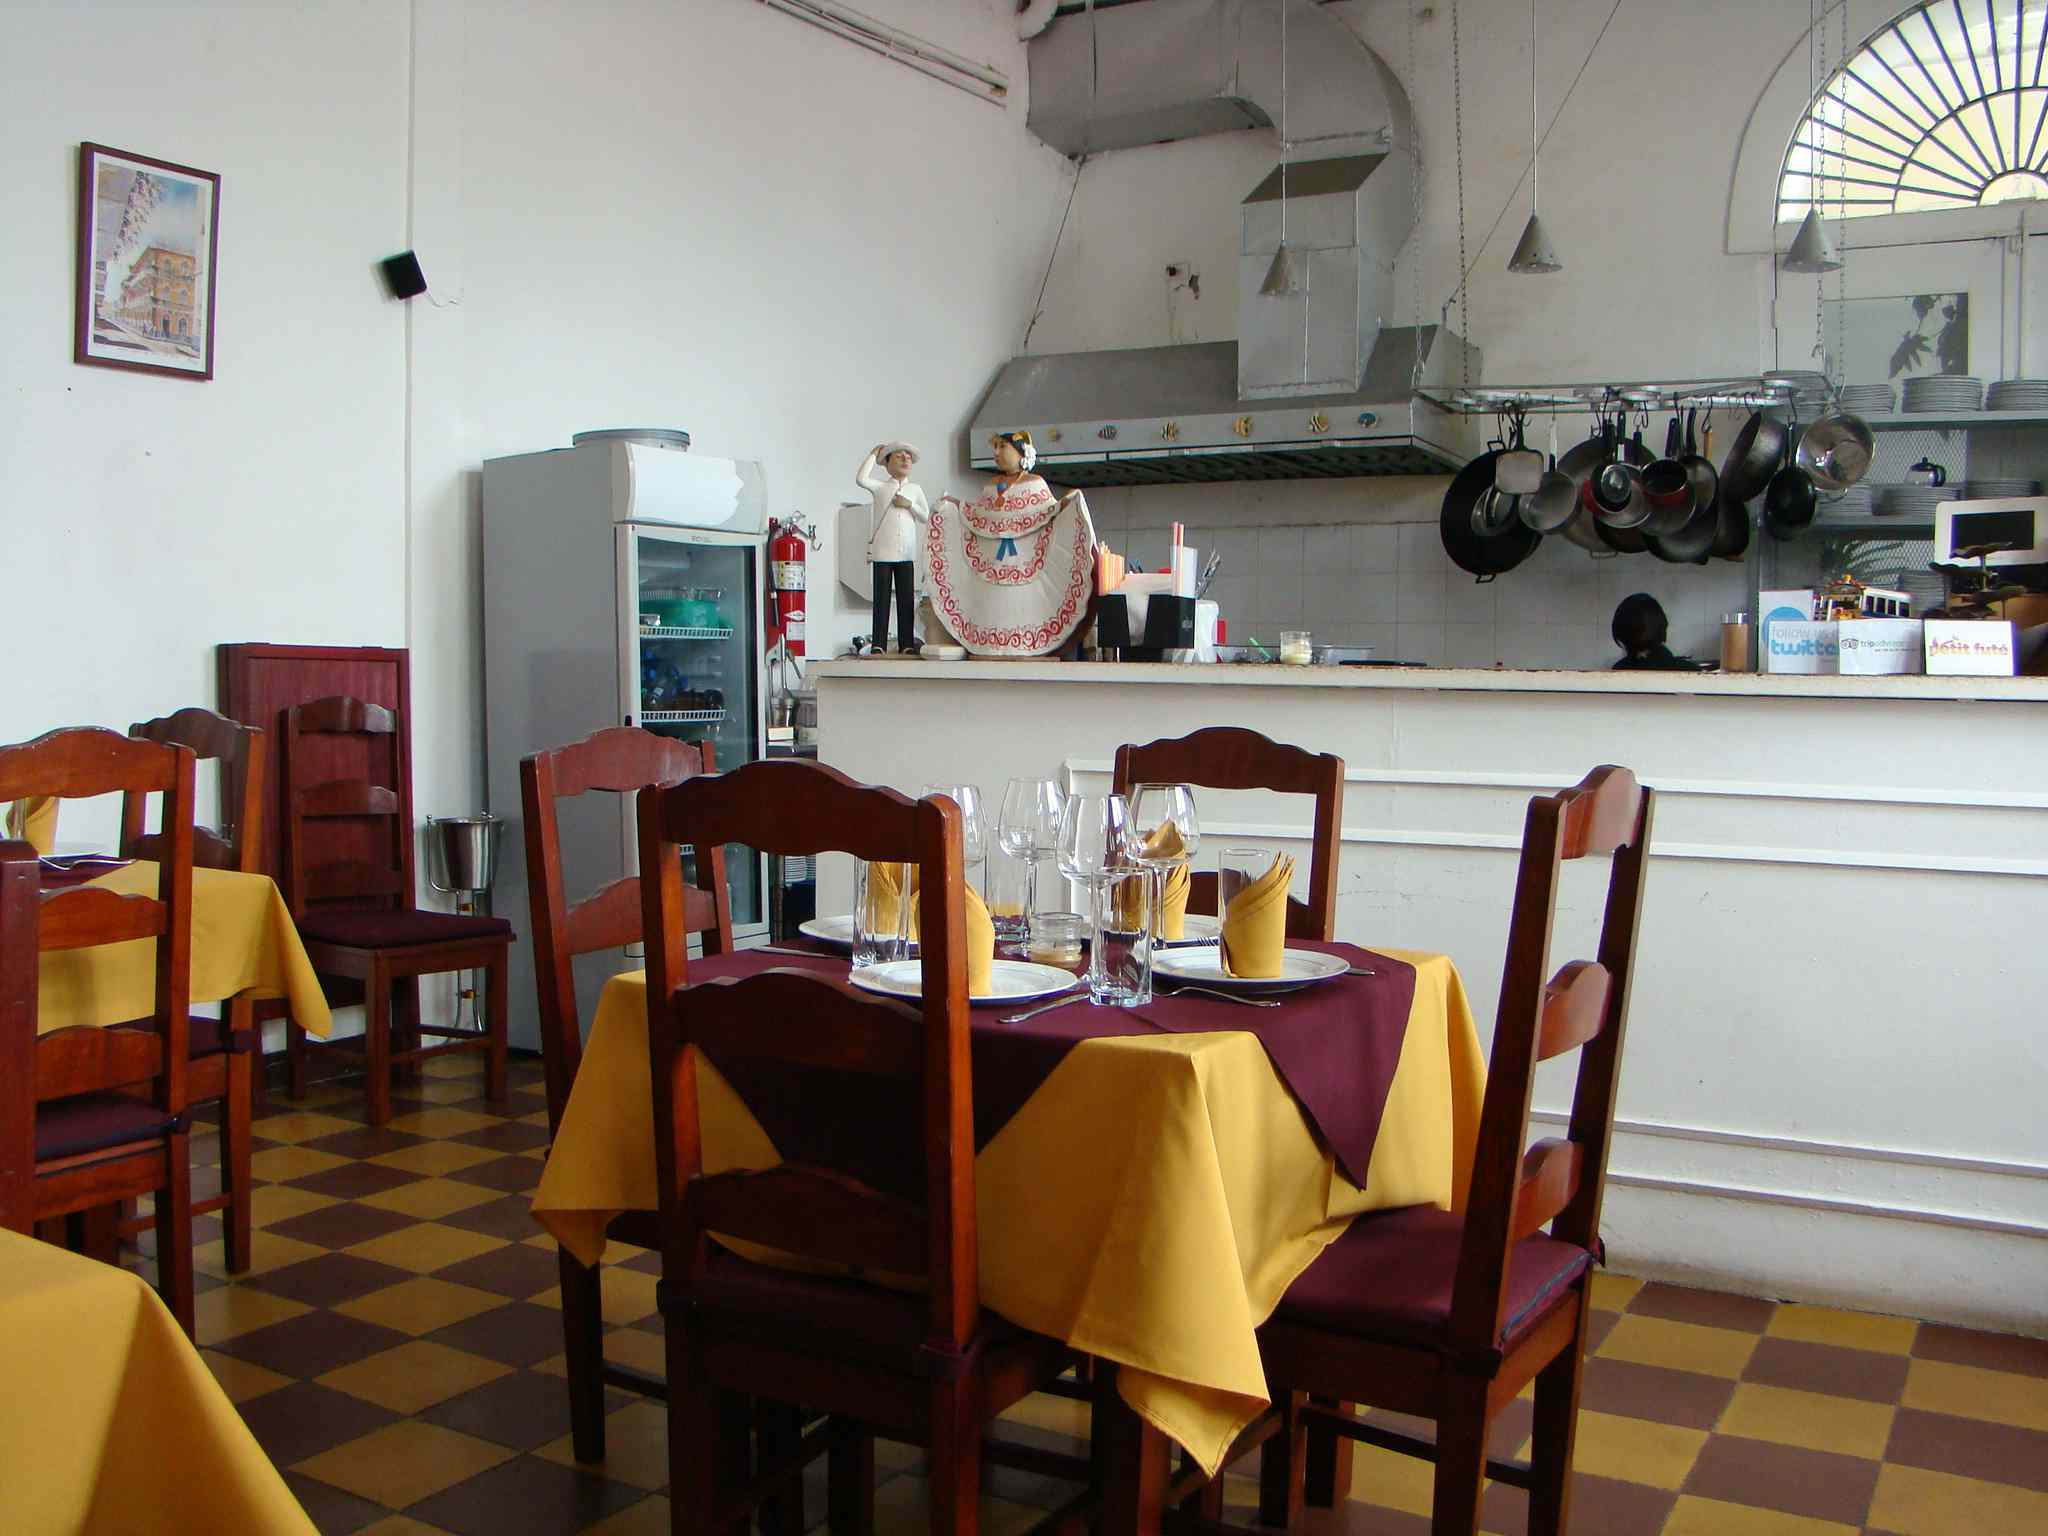 Panama City offers visitors a number of smaller restaurants providing quality dining.